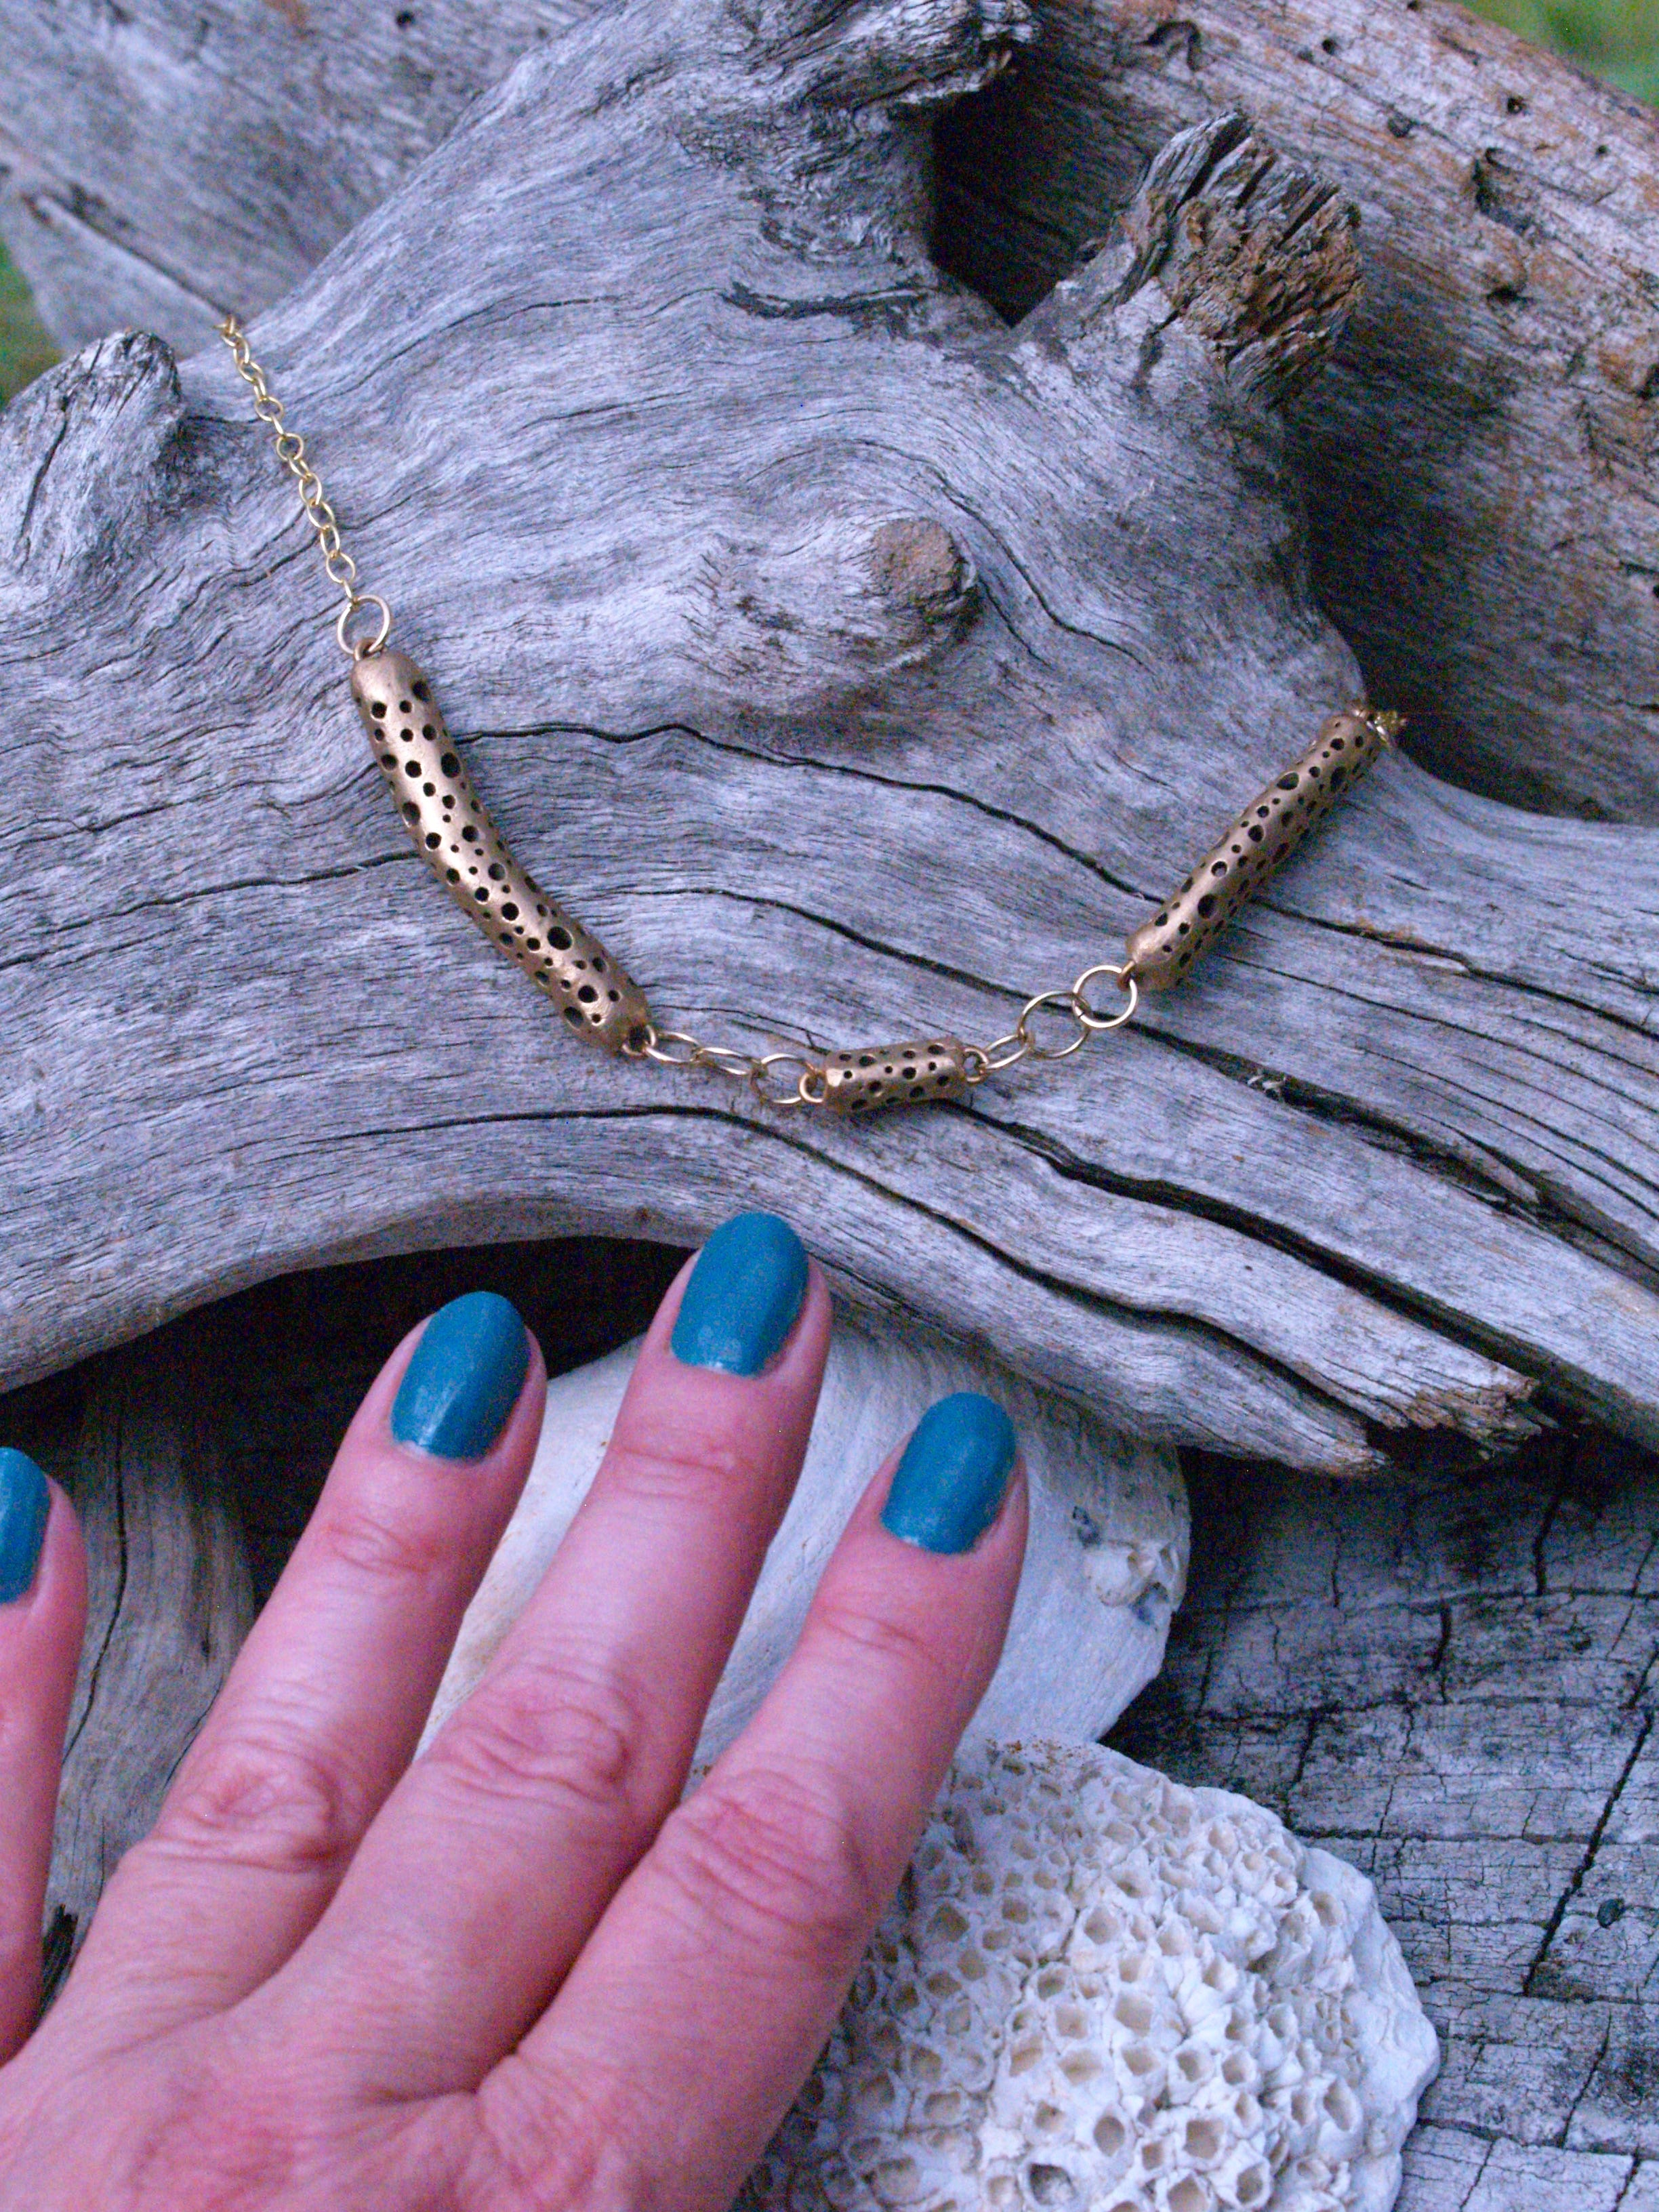 Reaching for the kelpie wearing a bronze art jewelry necklace